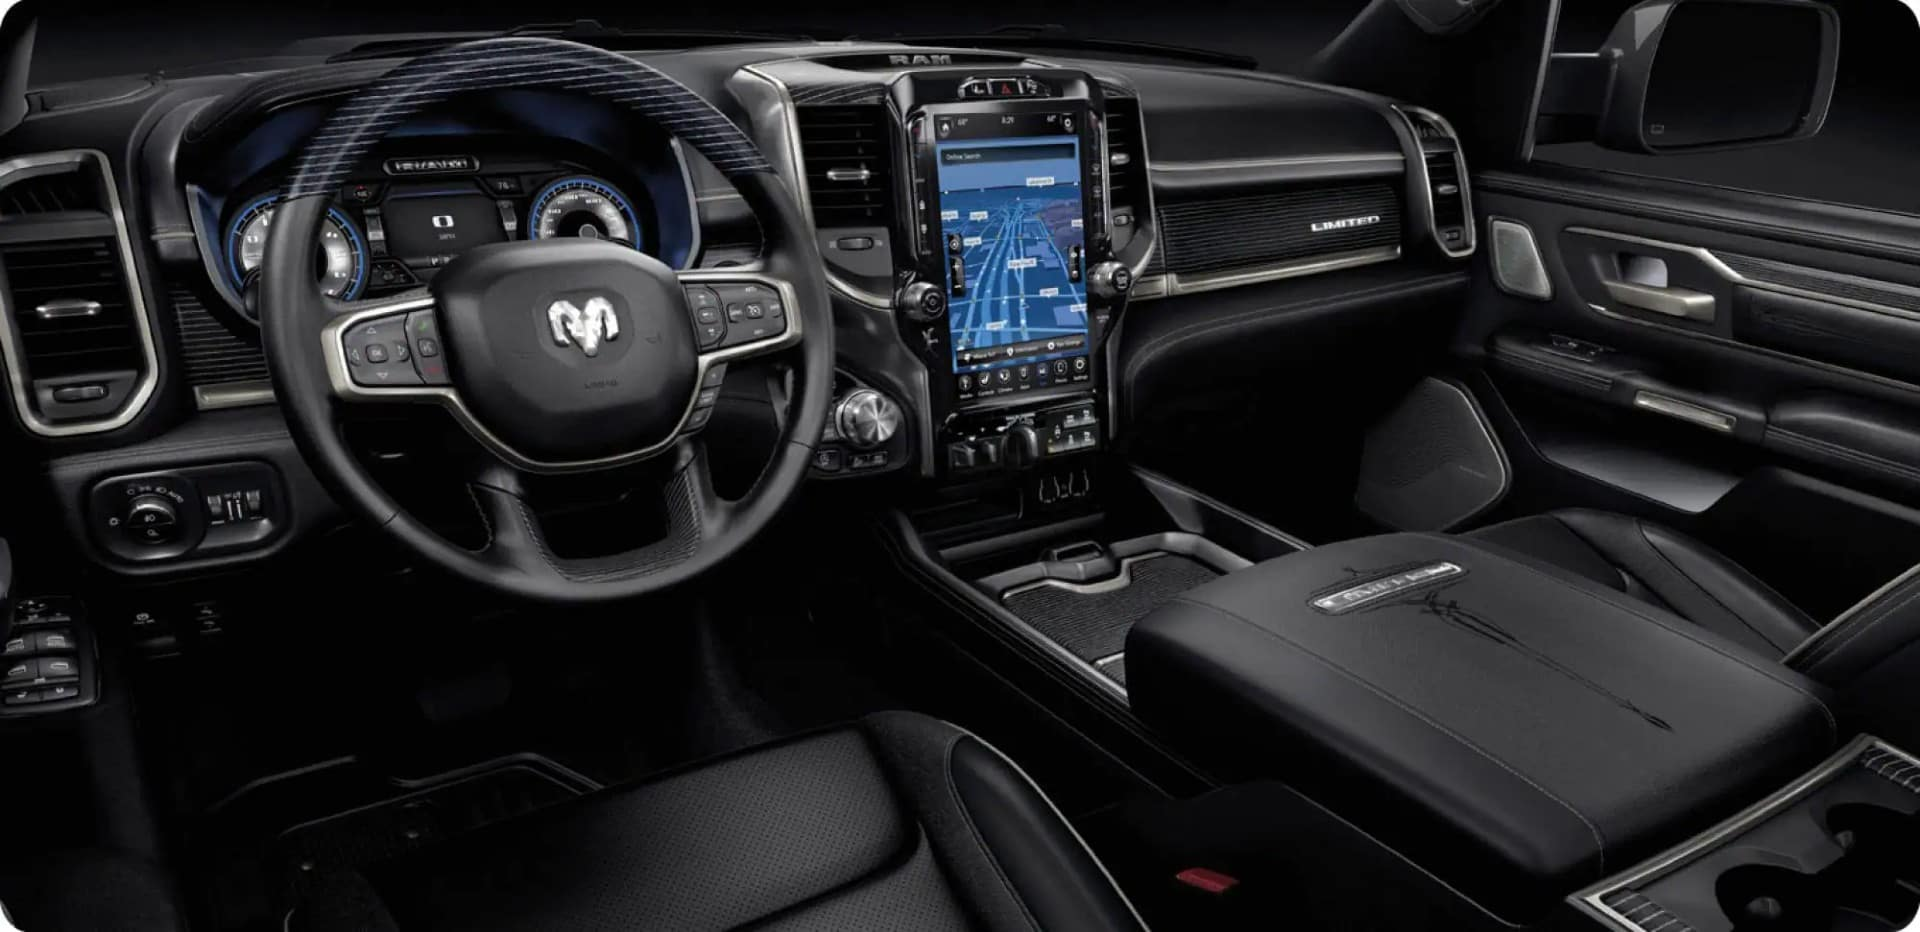 picture of dodge ram 1500 black interior for Sale in Hooksett New Hampshire